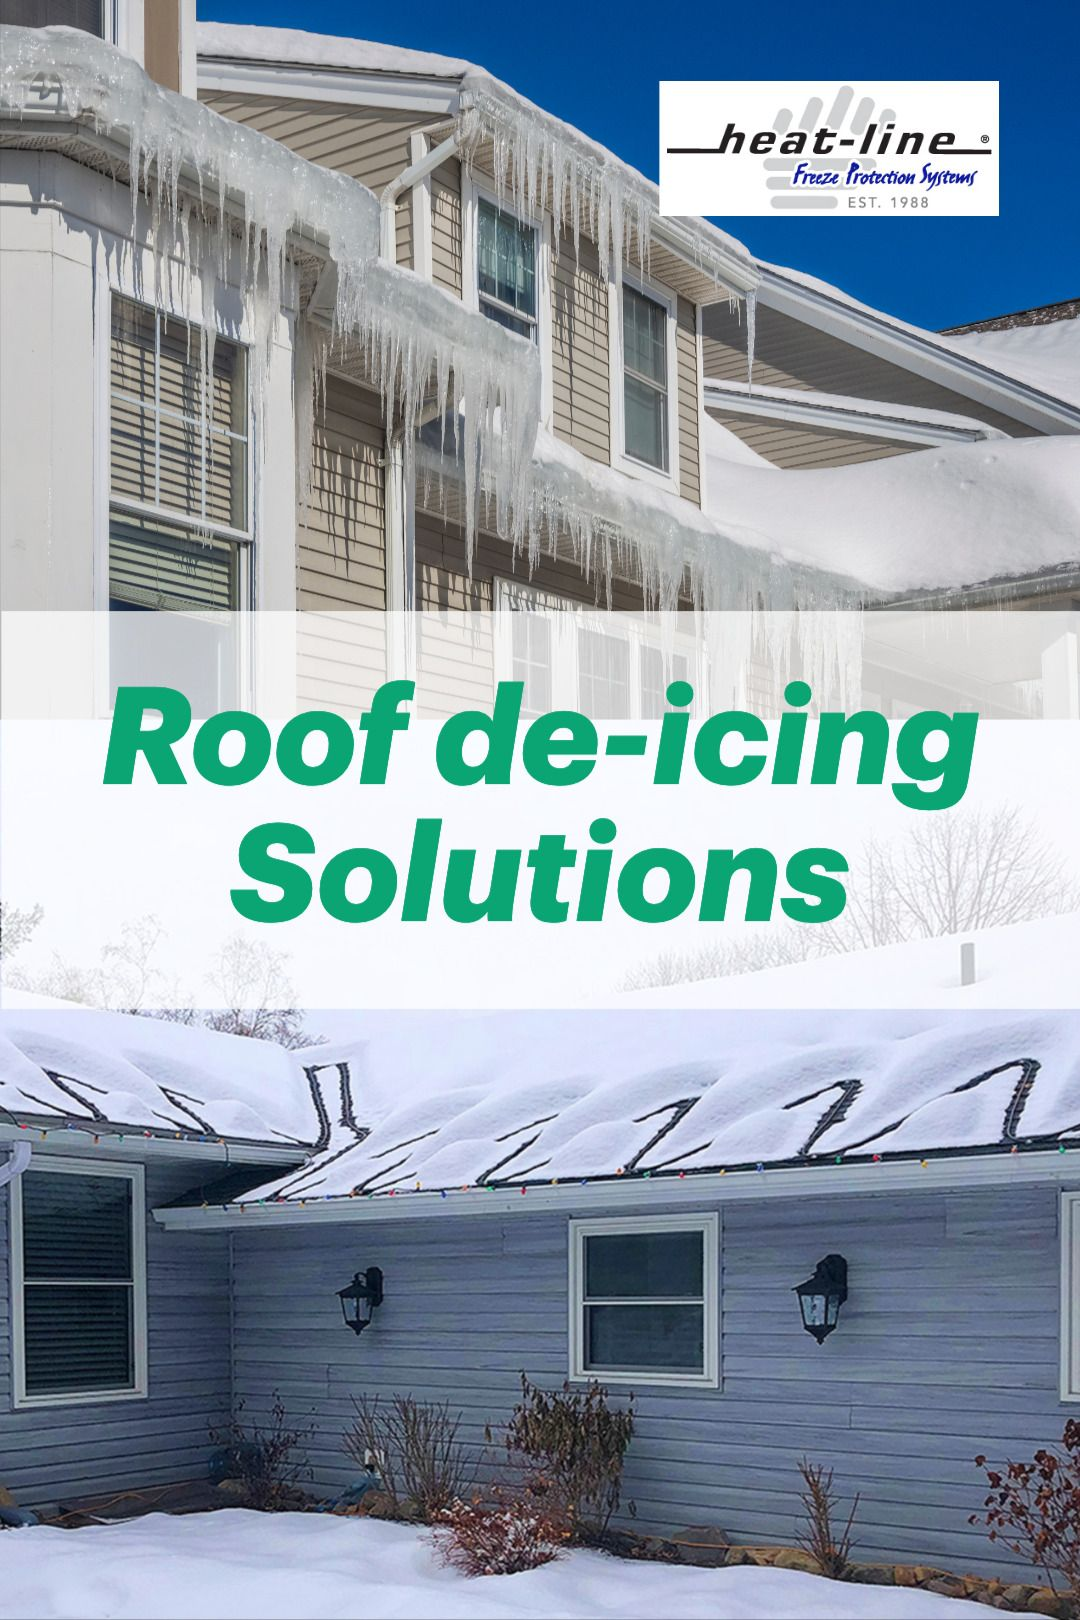 Paladin For Roof Is An Award Winning Advanced Self Regulating Heat Trace Cable Roof Edge Ice Bui In 2020 Small Modern House Exterior Modern House Exterior Roof Edge